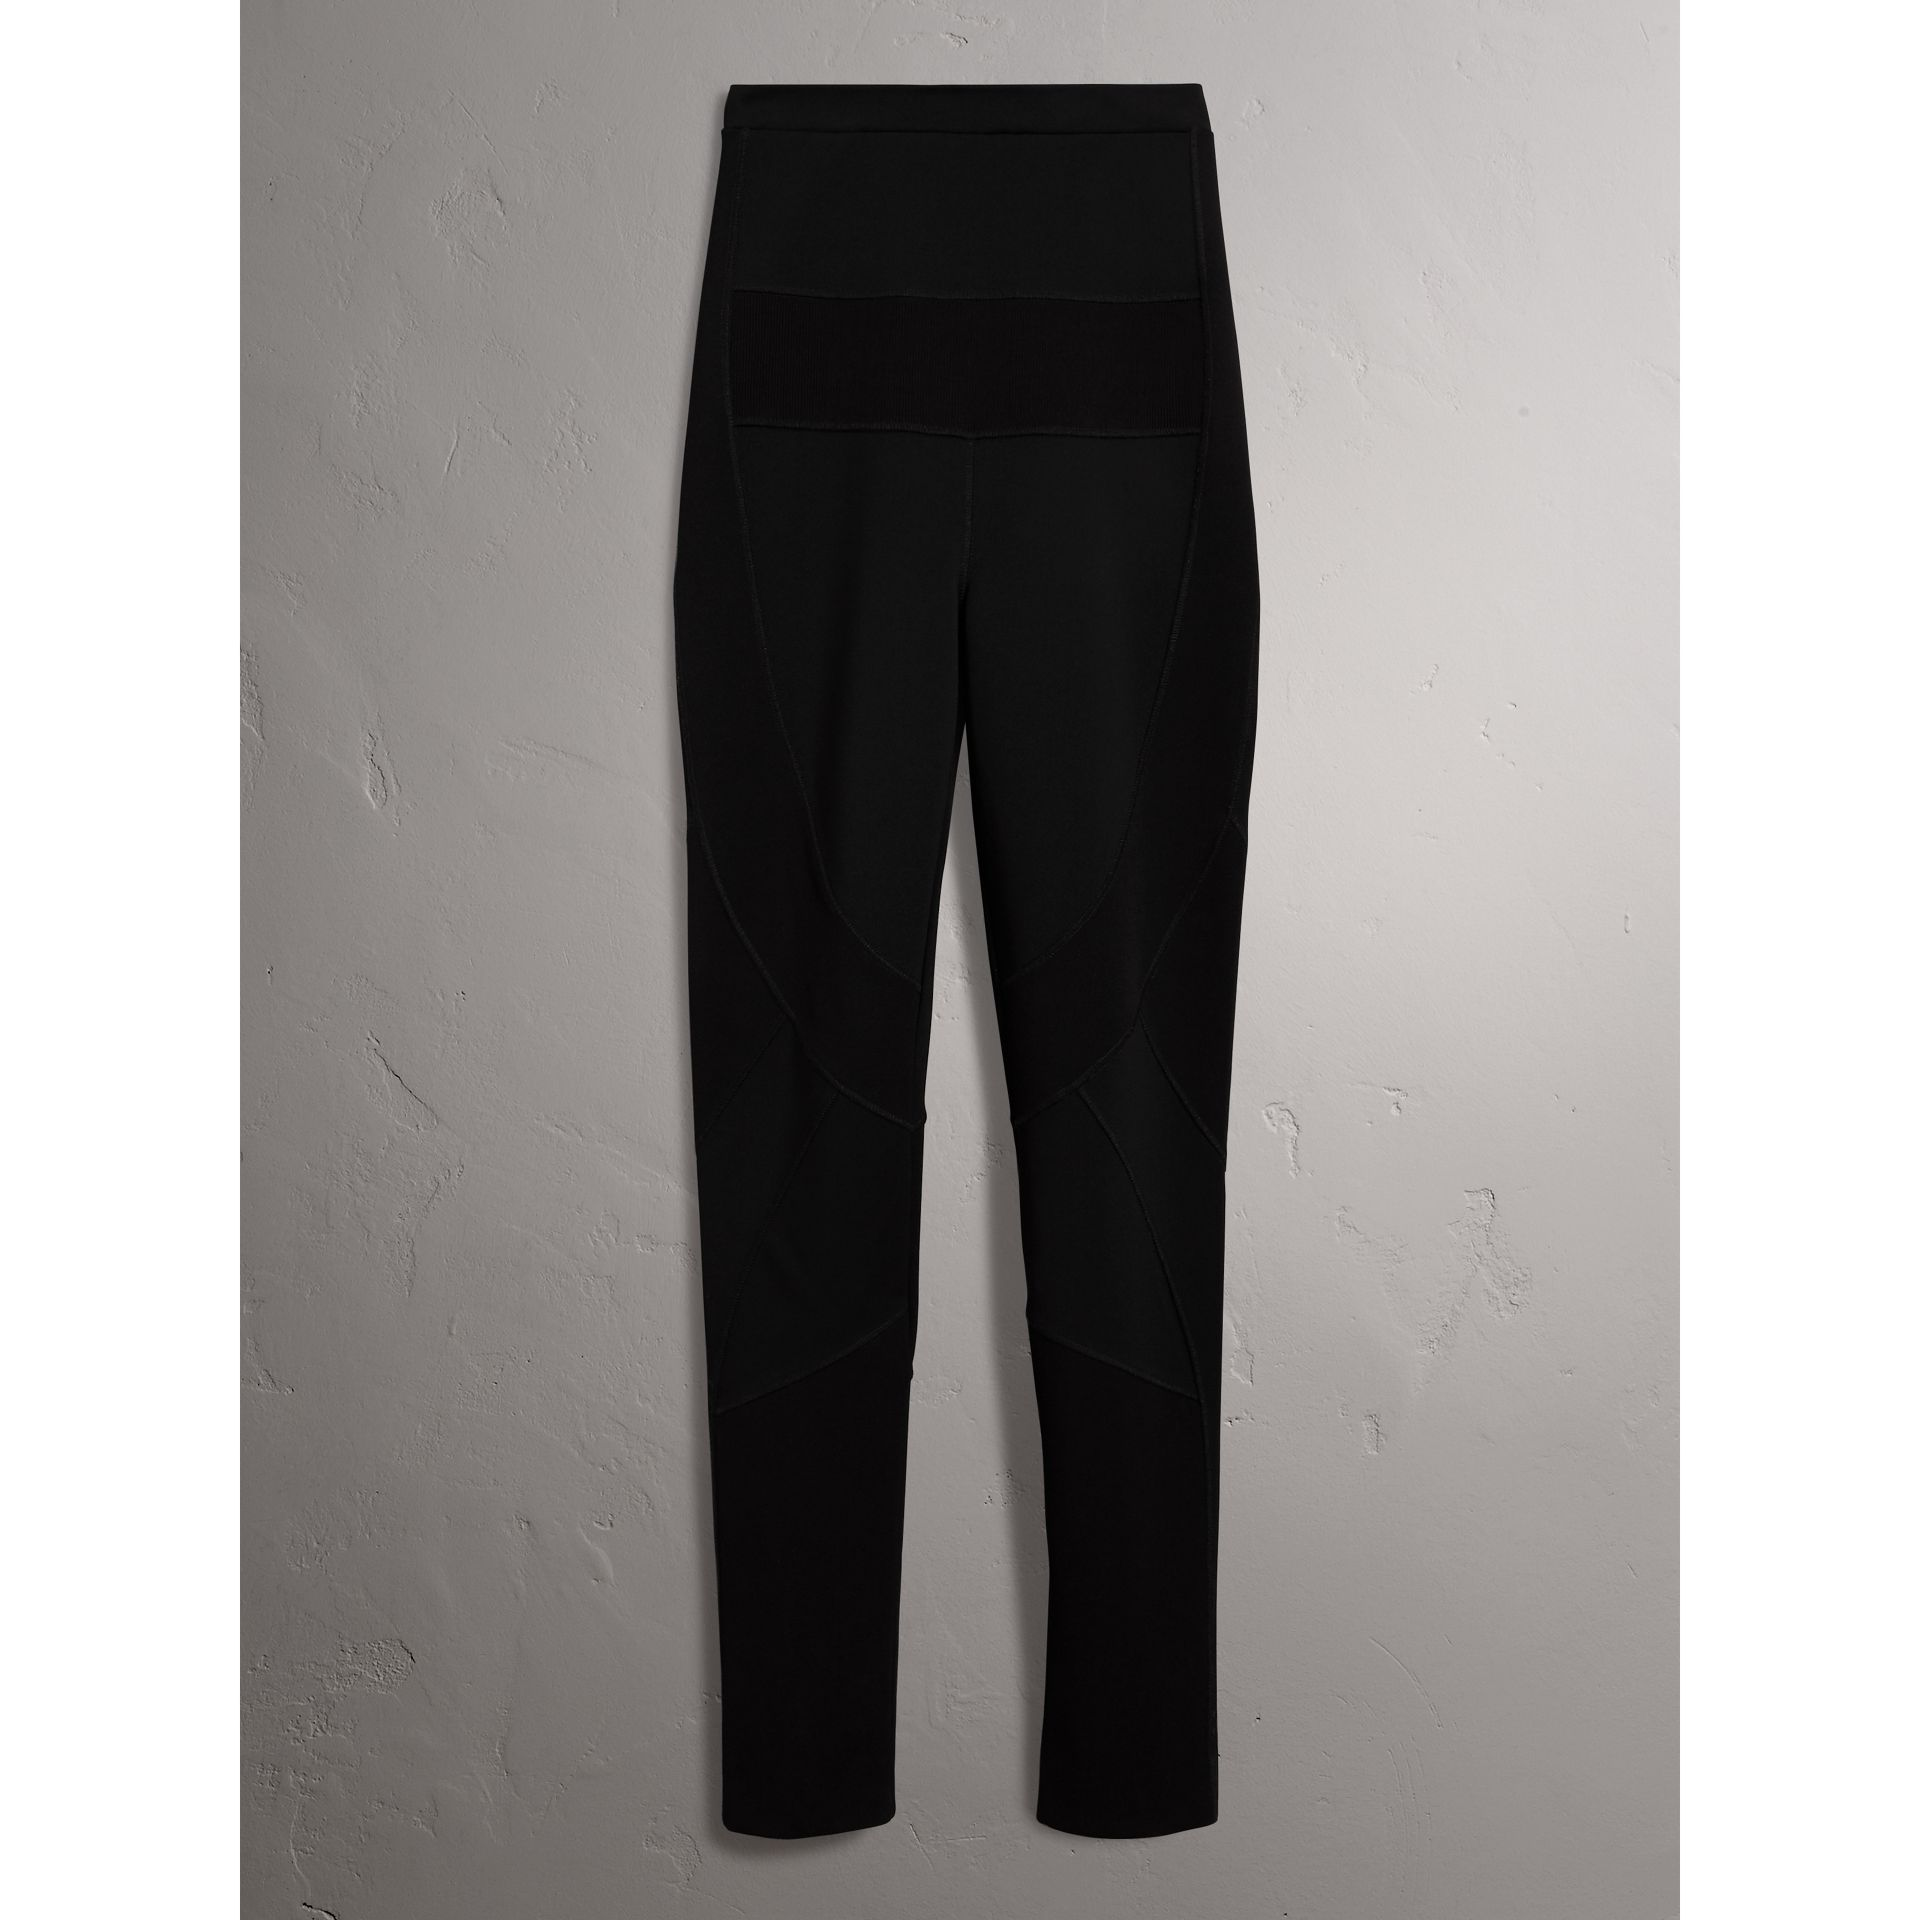 Panelled Stretch Jersey Leggings in Black - Women | Burberry United States - gallery image 3